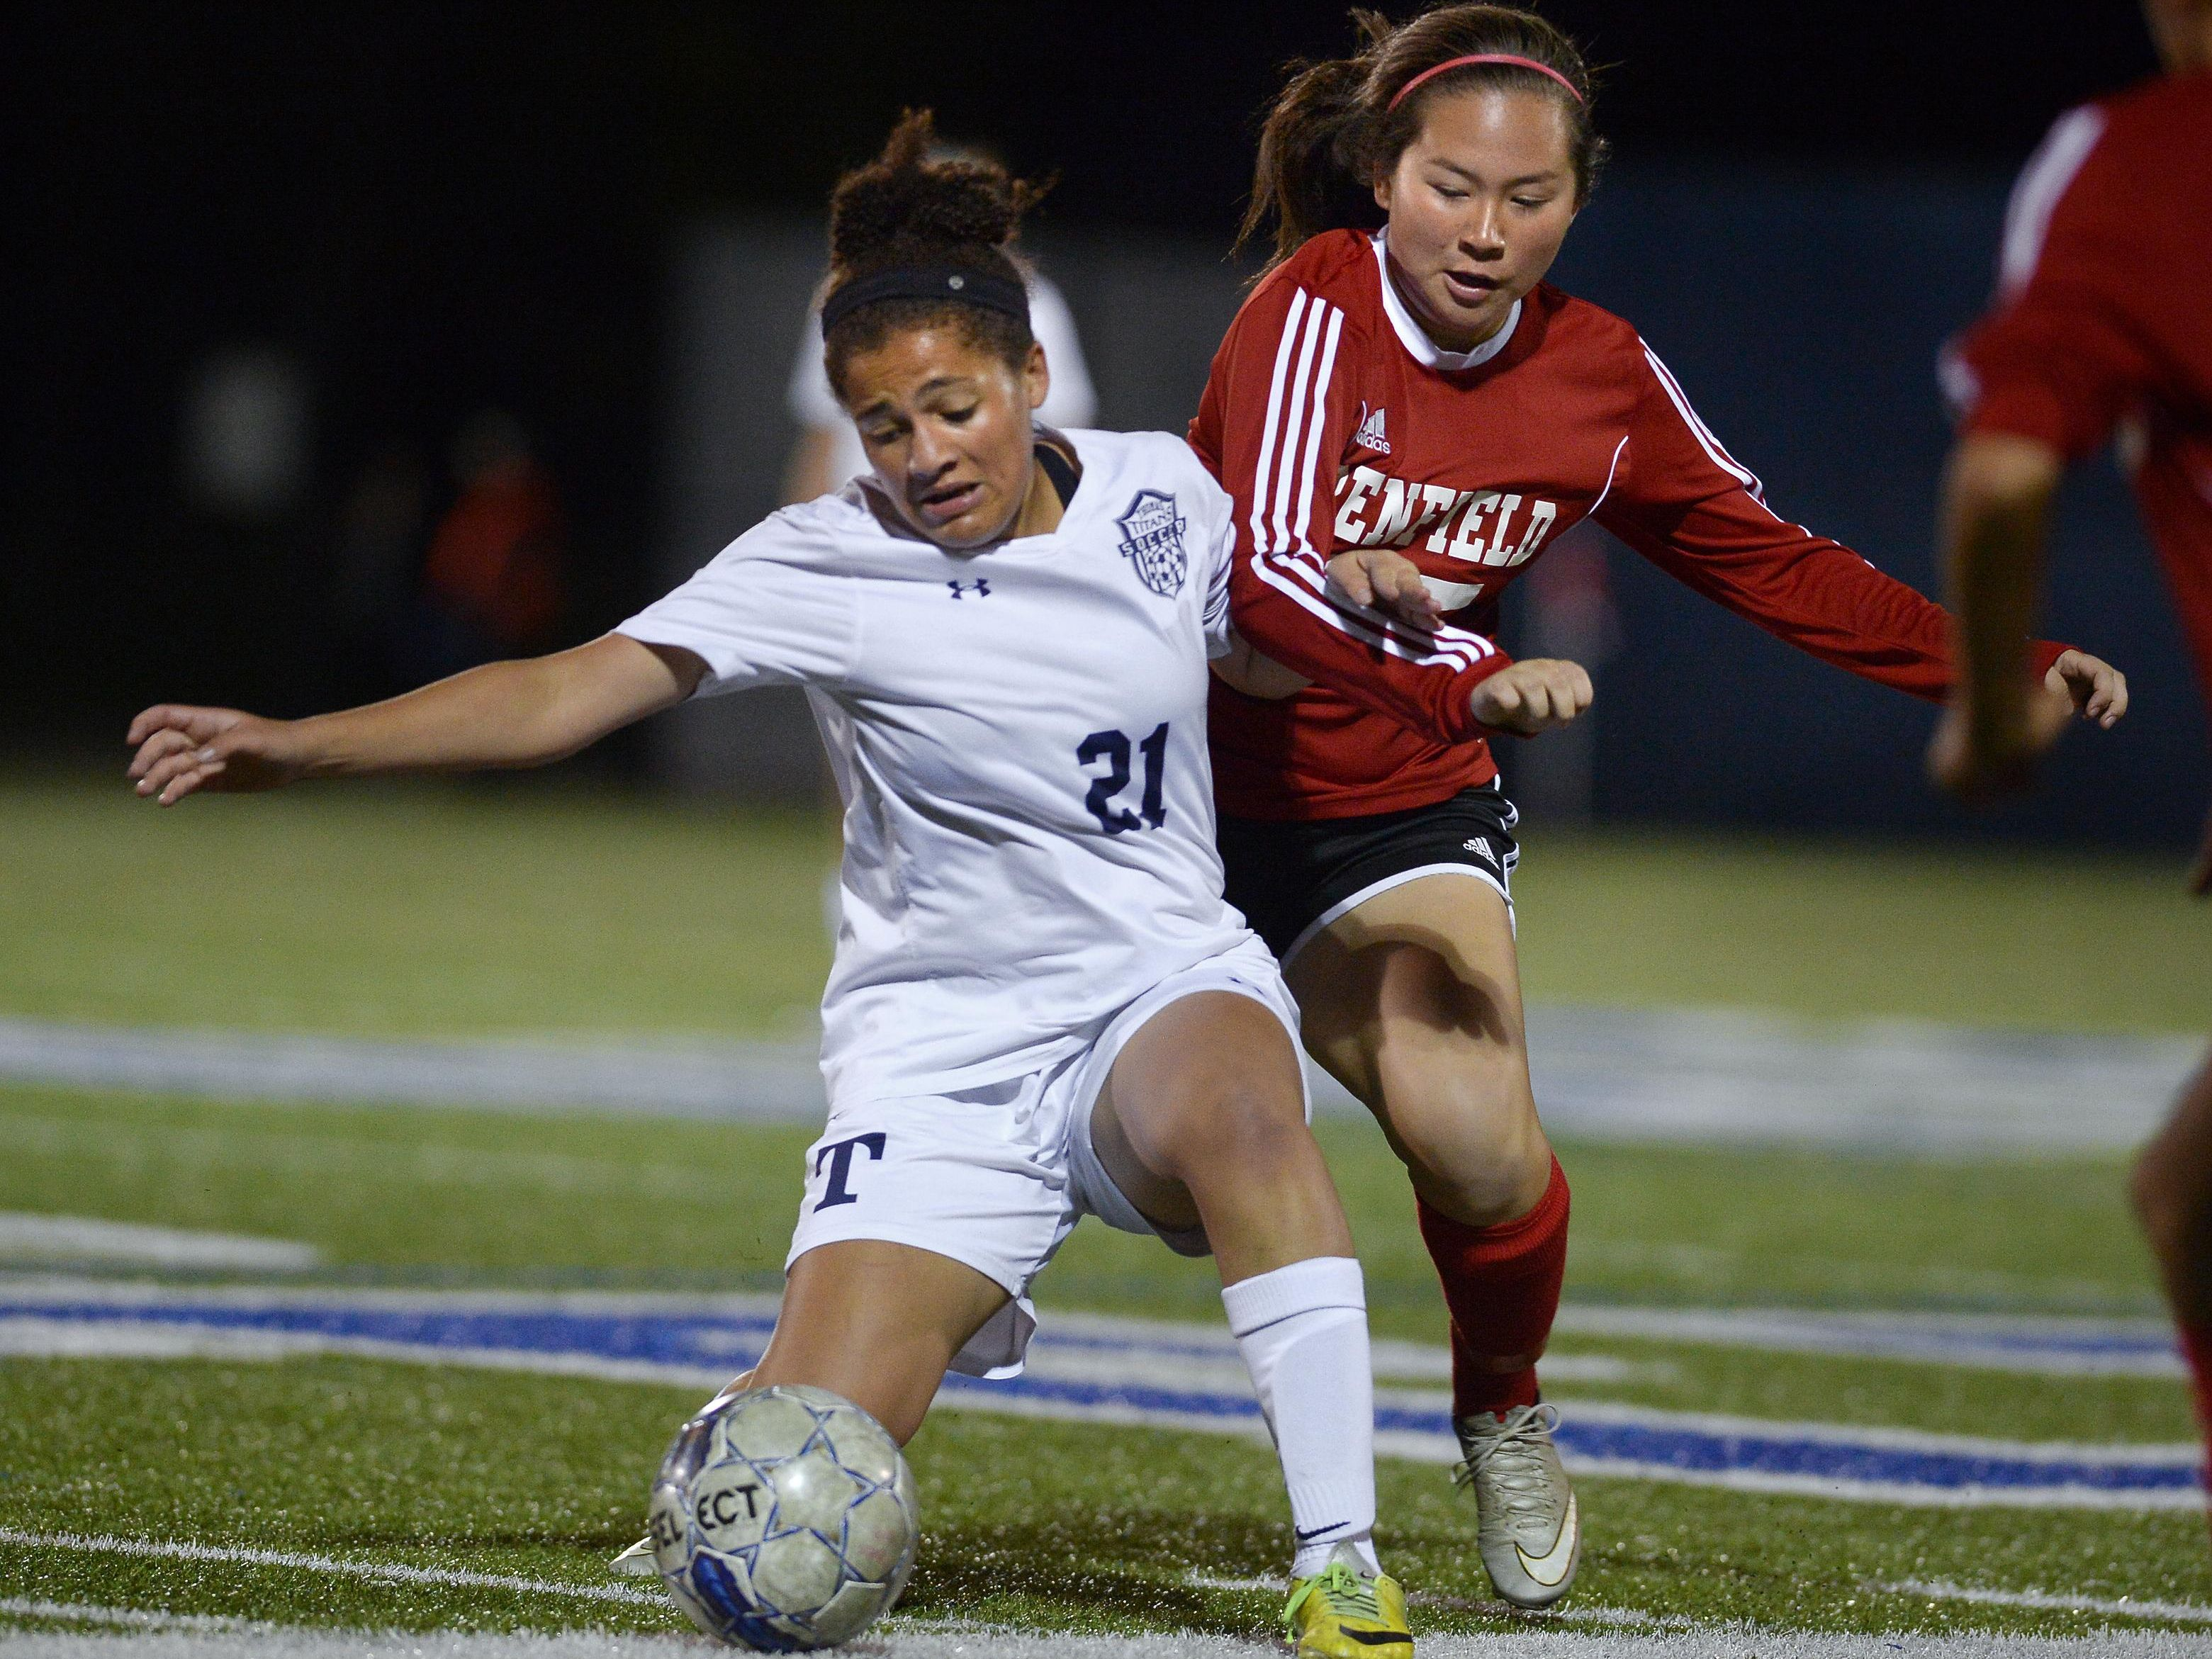 Webster Thomas' Amalia Barie, left, tries to shield the ball from Penfield's Megan Karp on Wednesday.